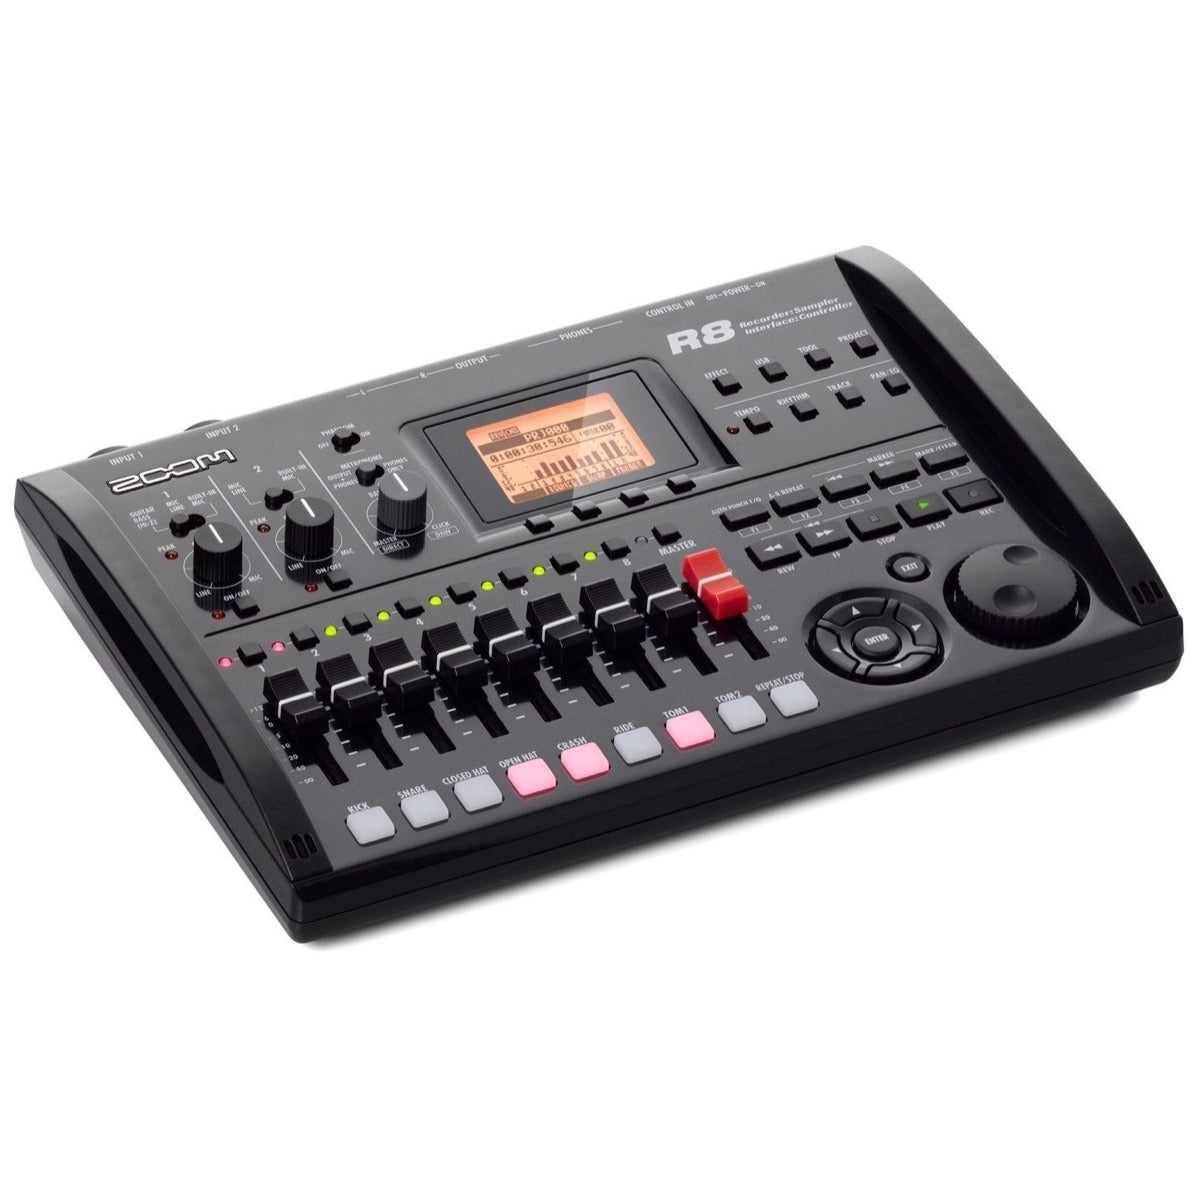 Zoom R8 Multitrack SD Recorder Interface and Controller